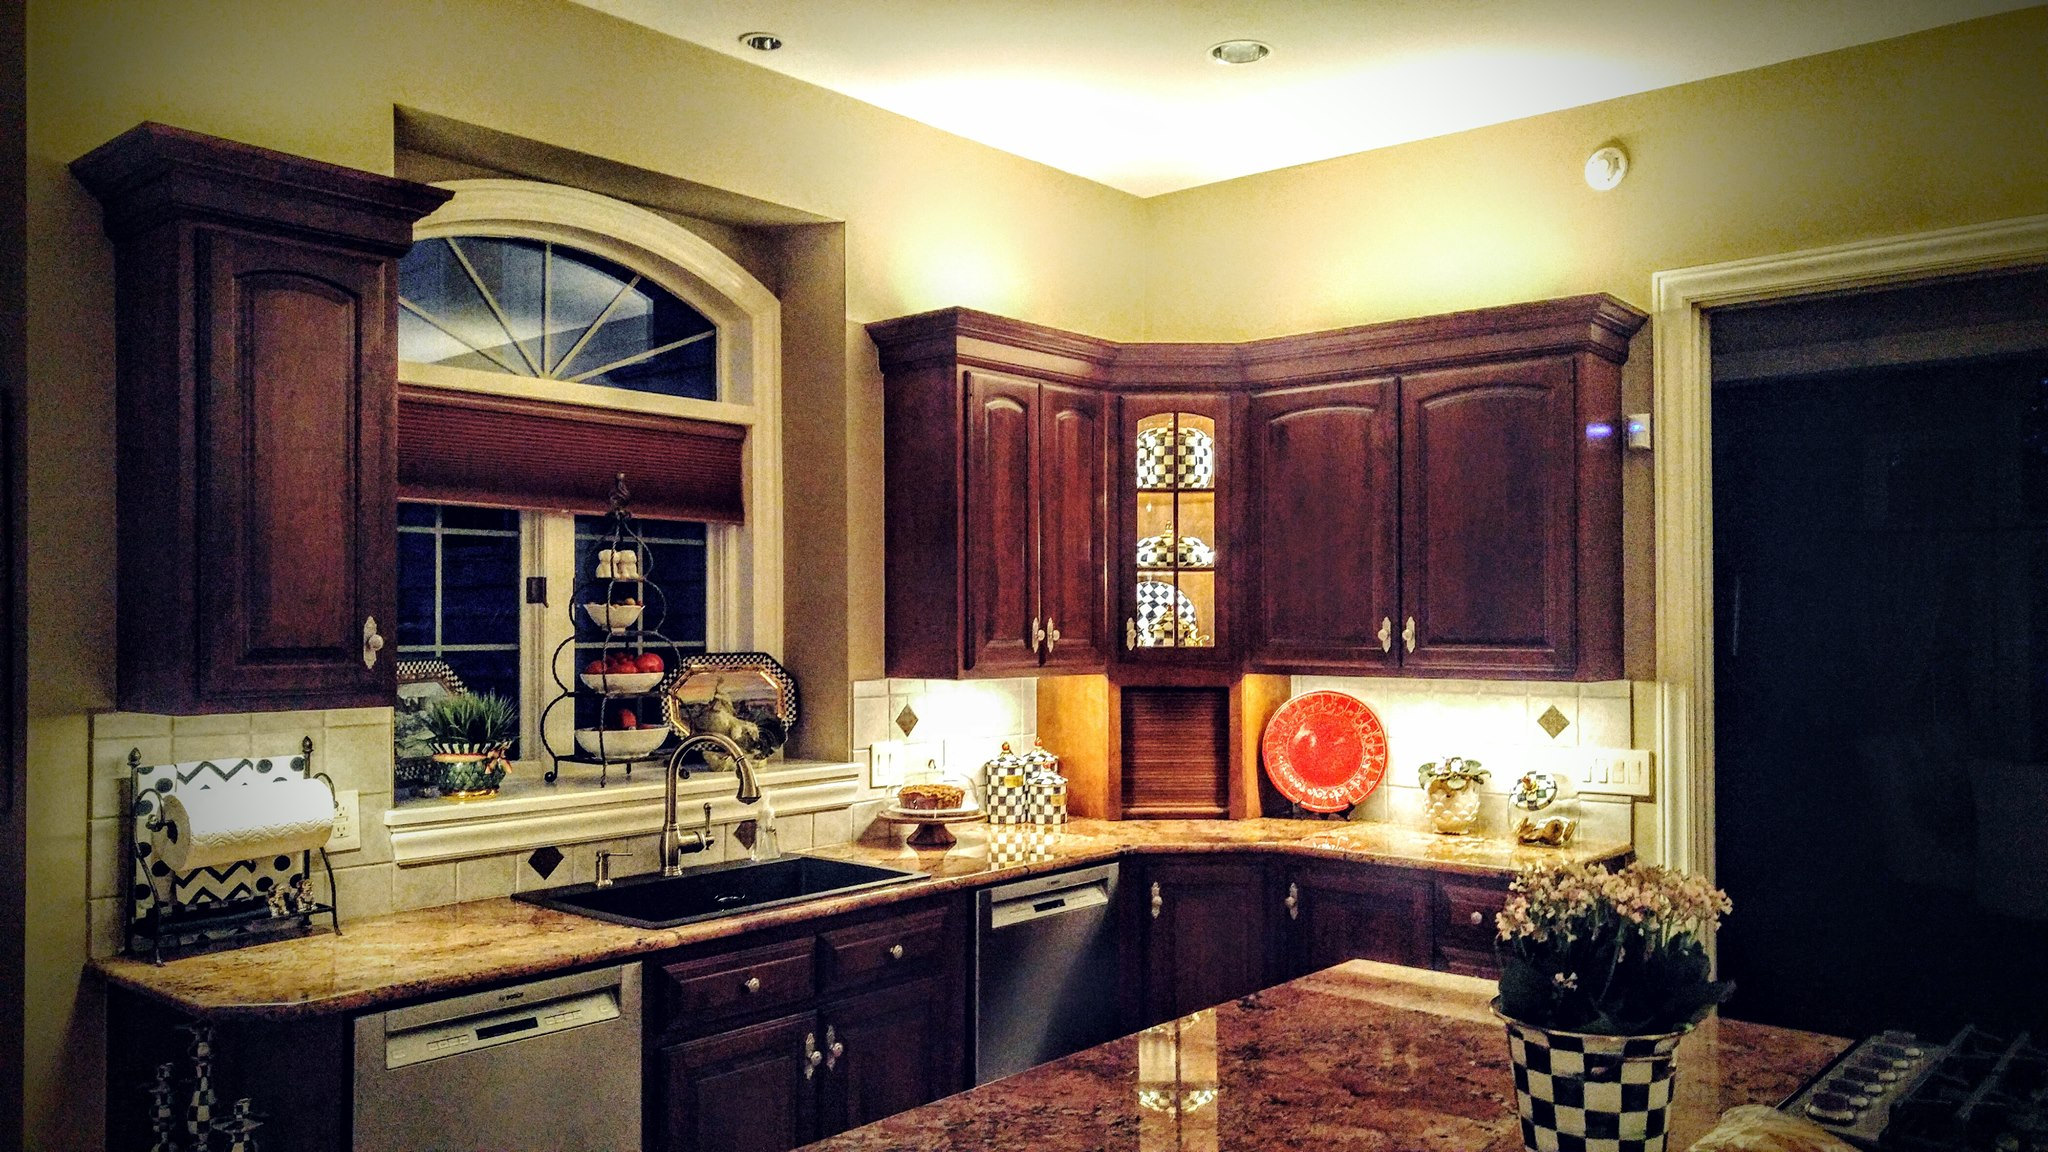 Kitchen Up Lighting And Under Cabinet Lighting Pilosi Electric - Kitchen up lighting